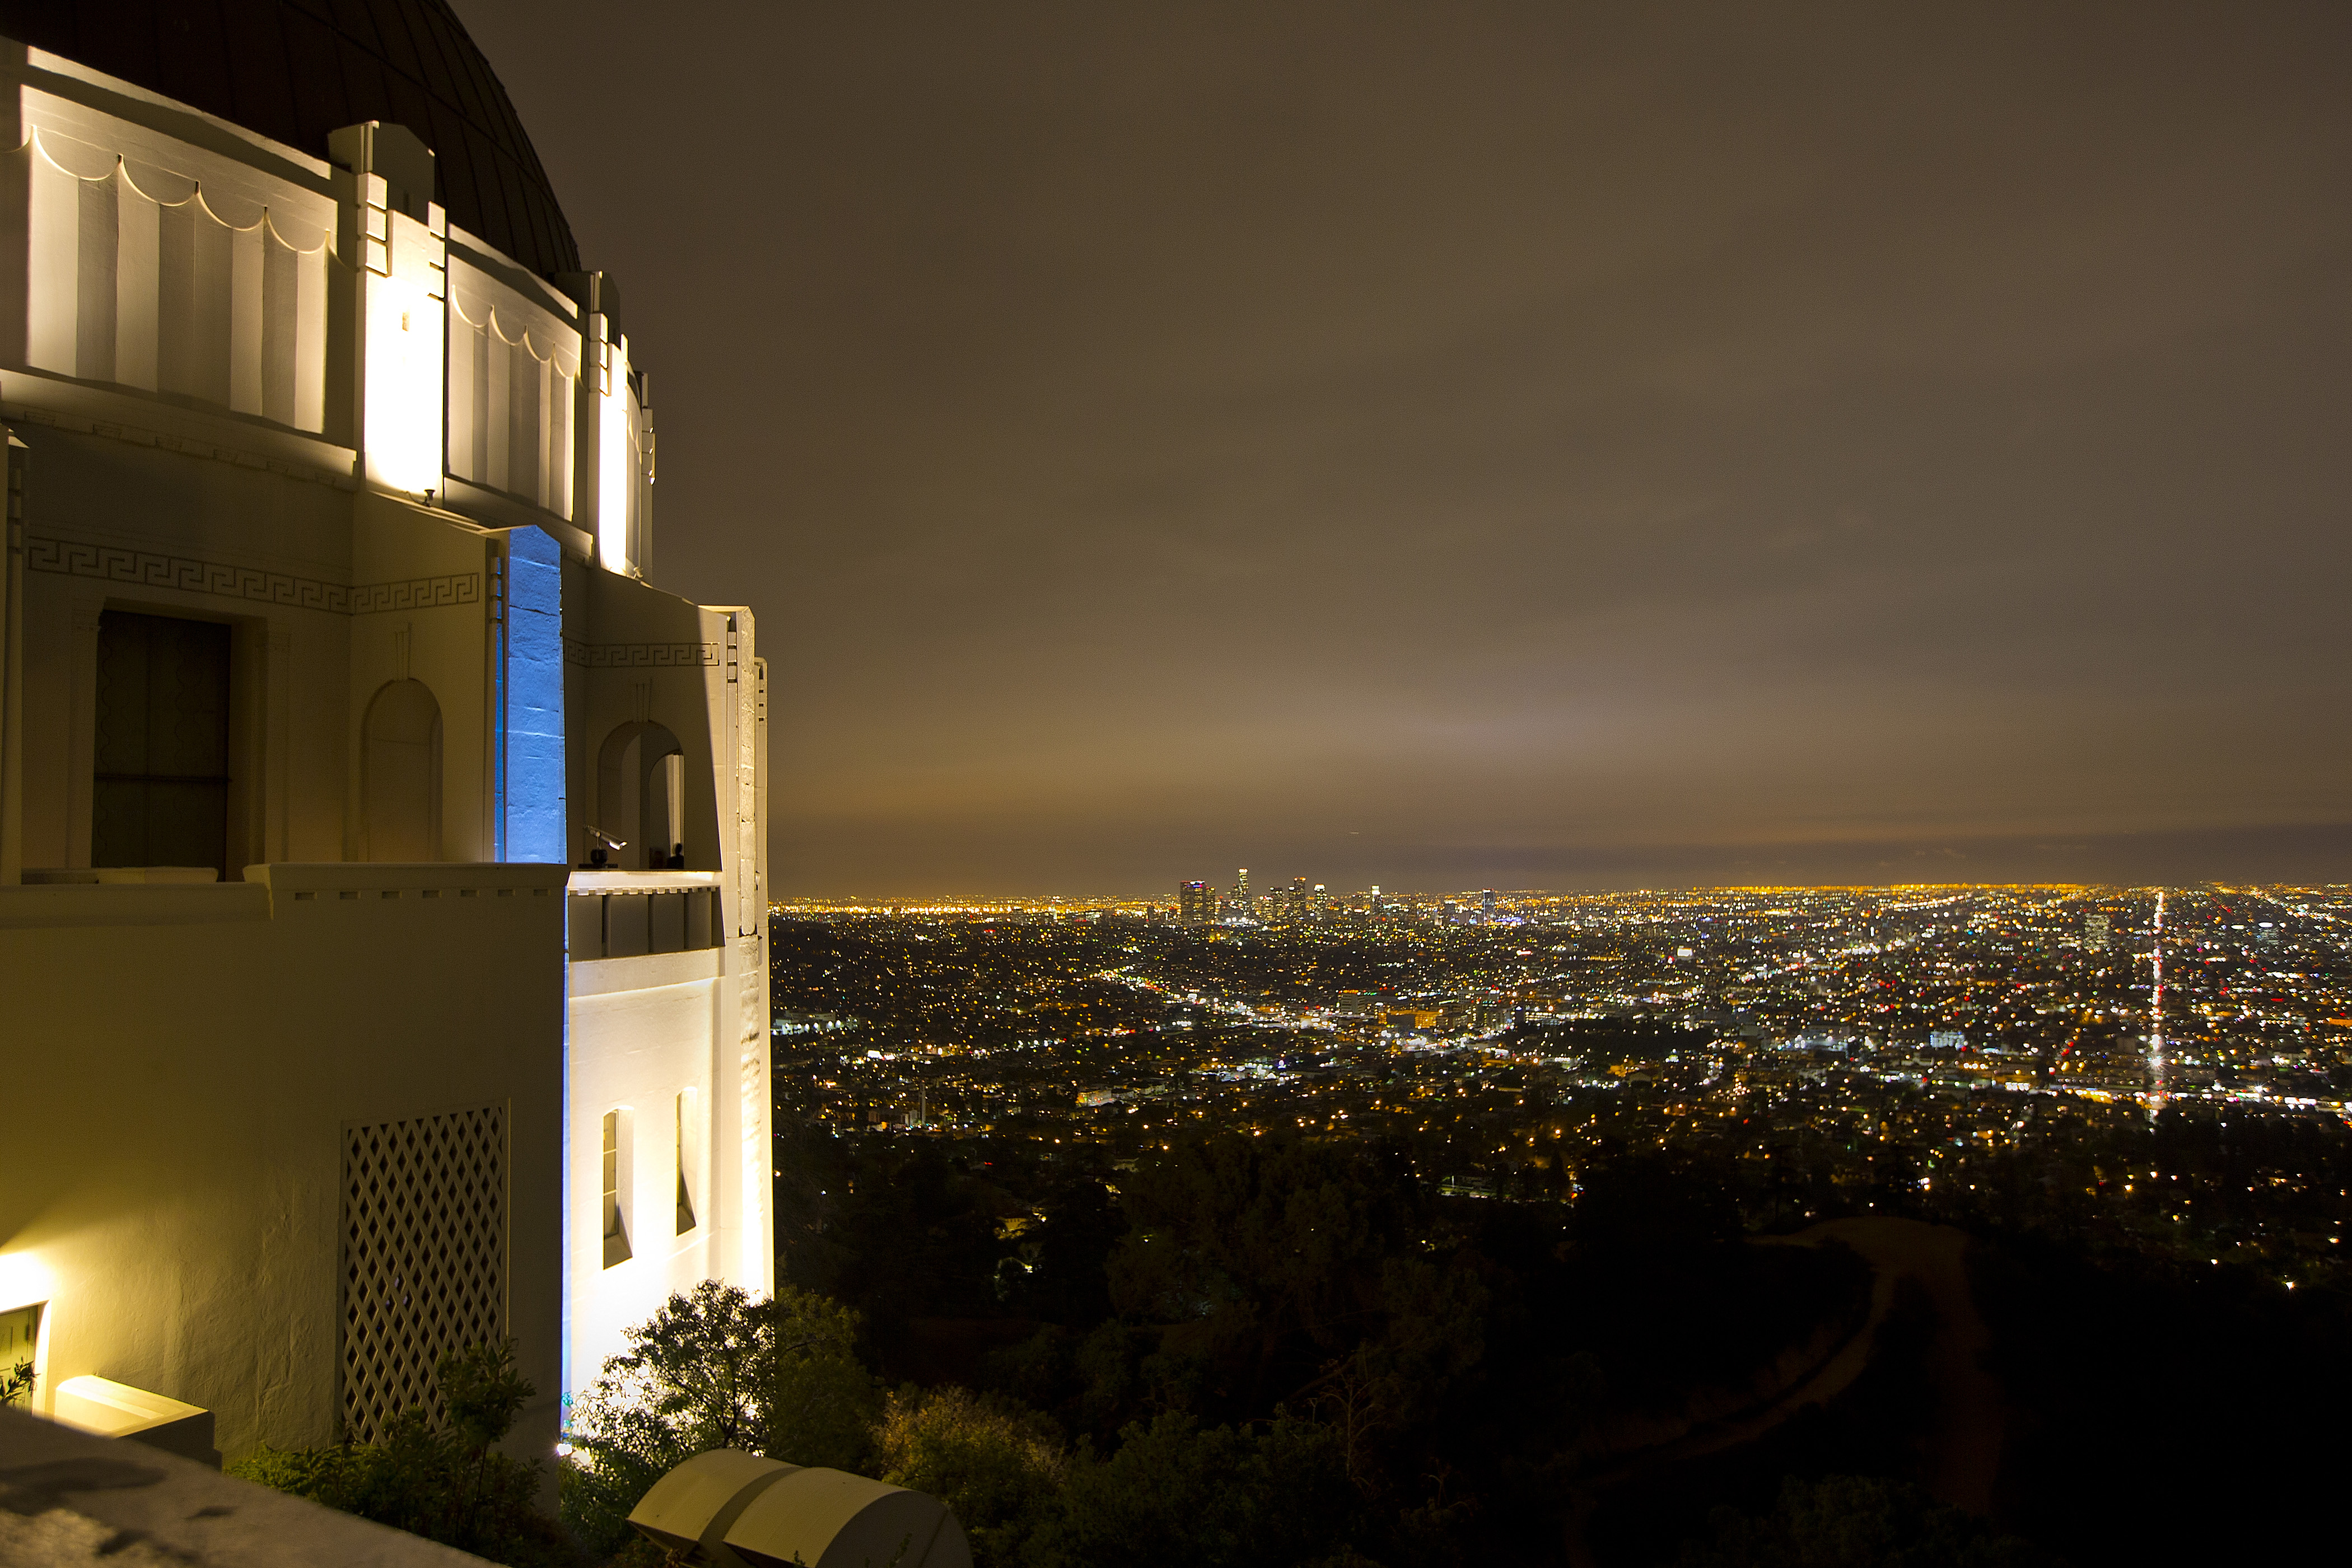 LA, Los Angeles, Griffiths Observatory